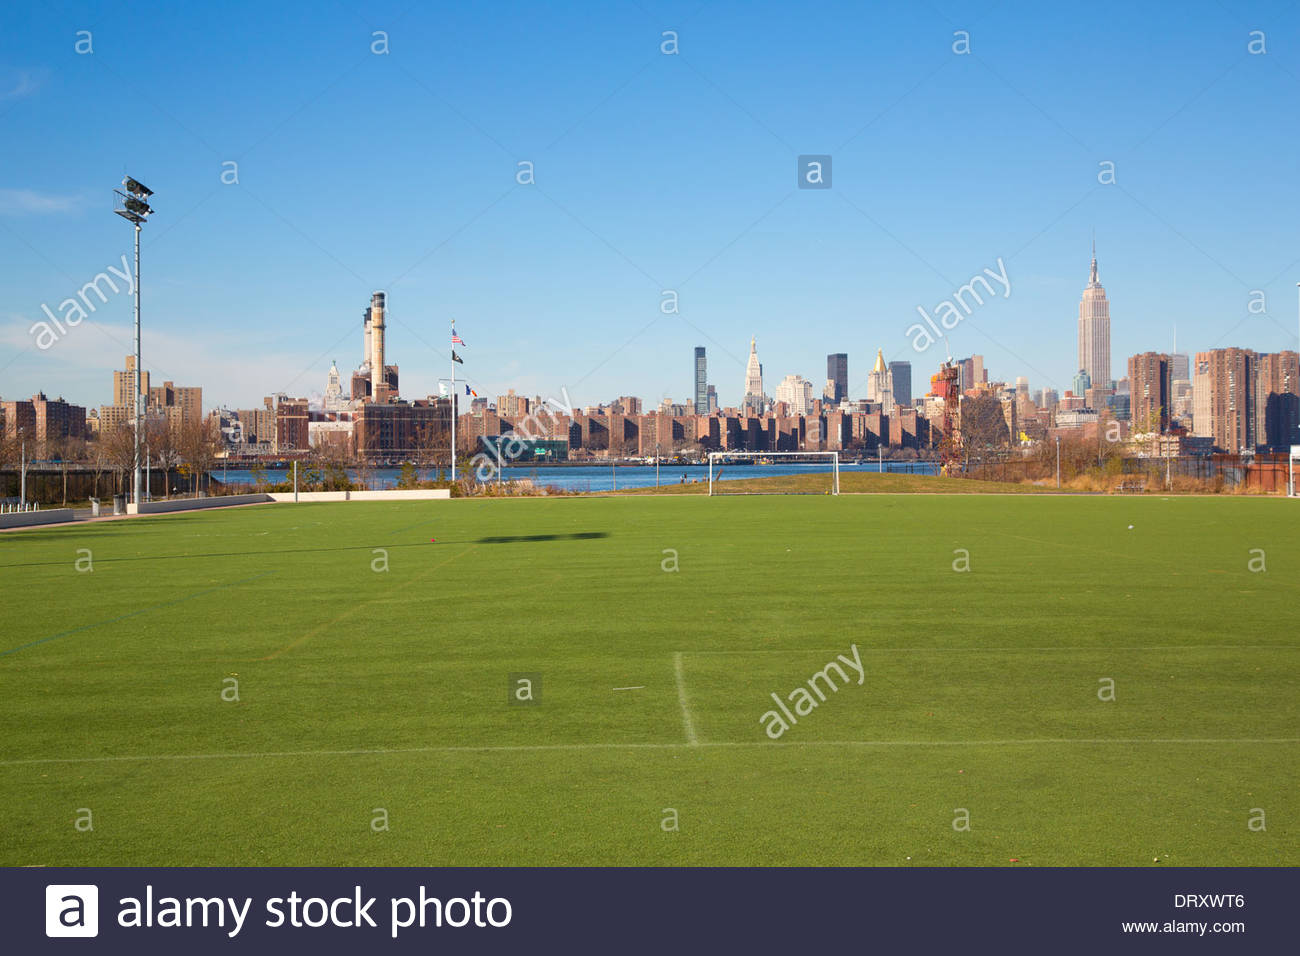 Cathedral Church of St John the Divine New York City, View of the New York City skyline from Bushwick Inlet Park in ...